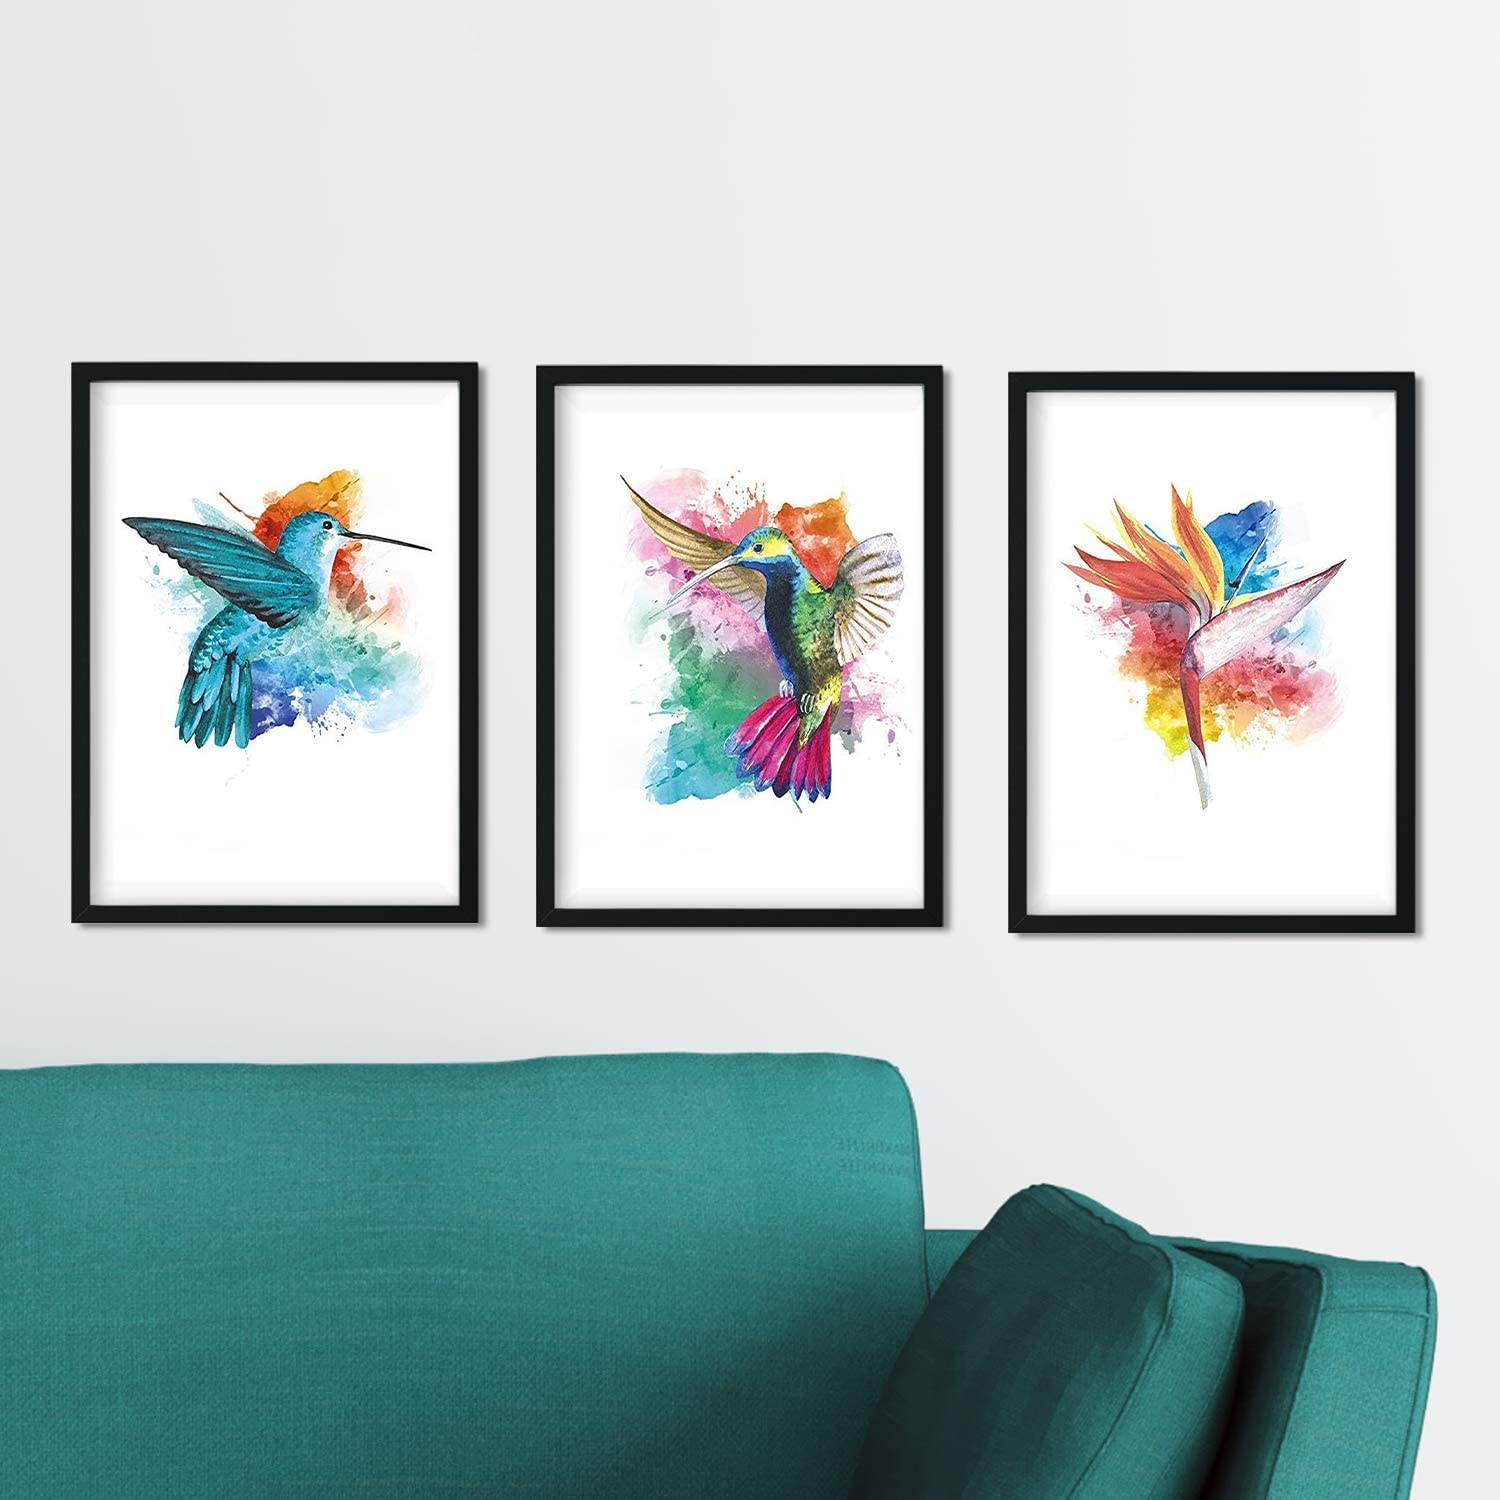 Nacnic Prints Birds Watercolor Style - Set of 3 - Unframed 8x11 inch Size - 250g Paper - Beautiful Poster Painting for Home Office Living Room